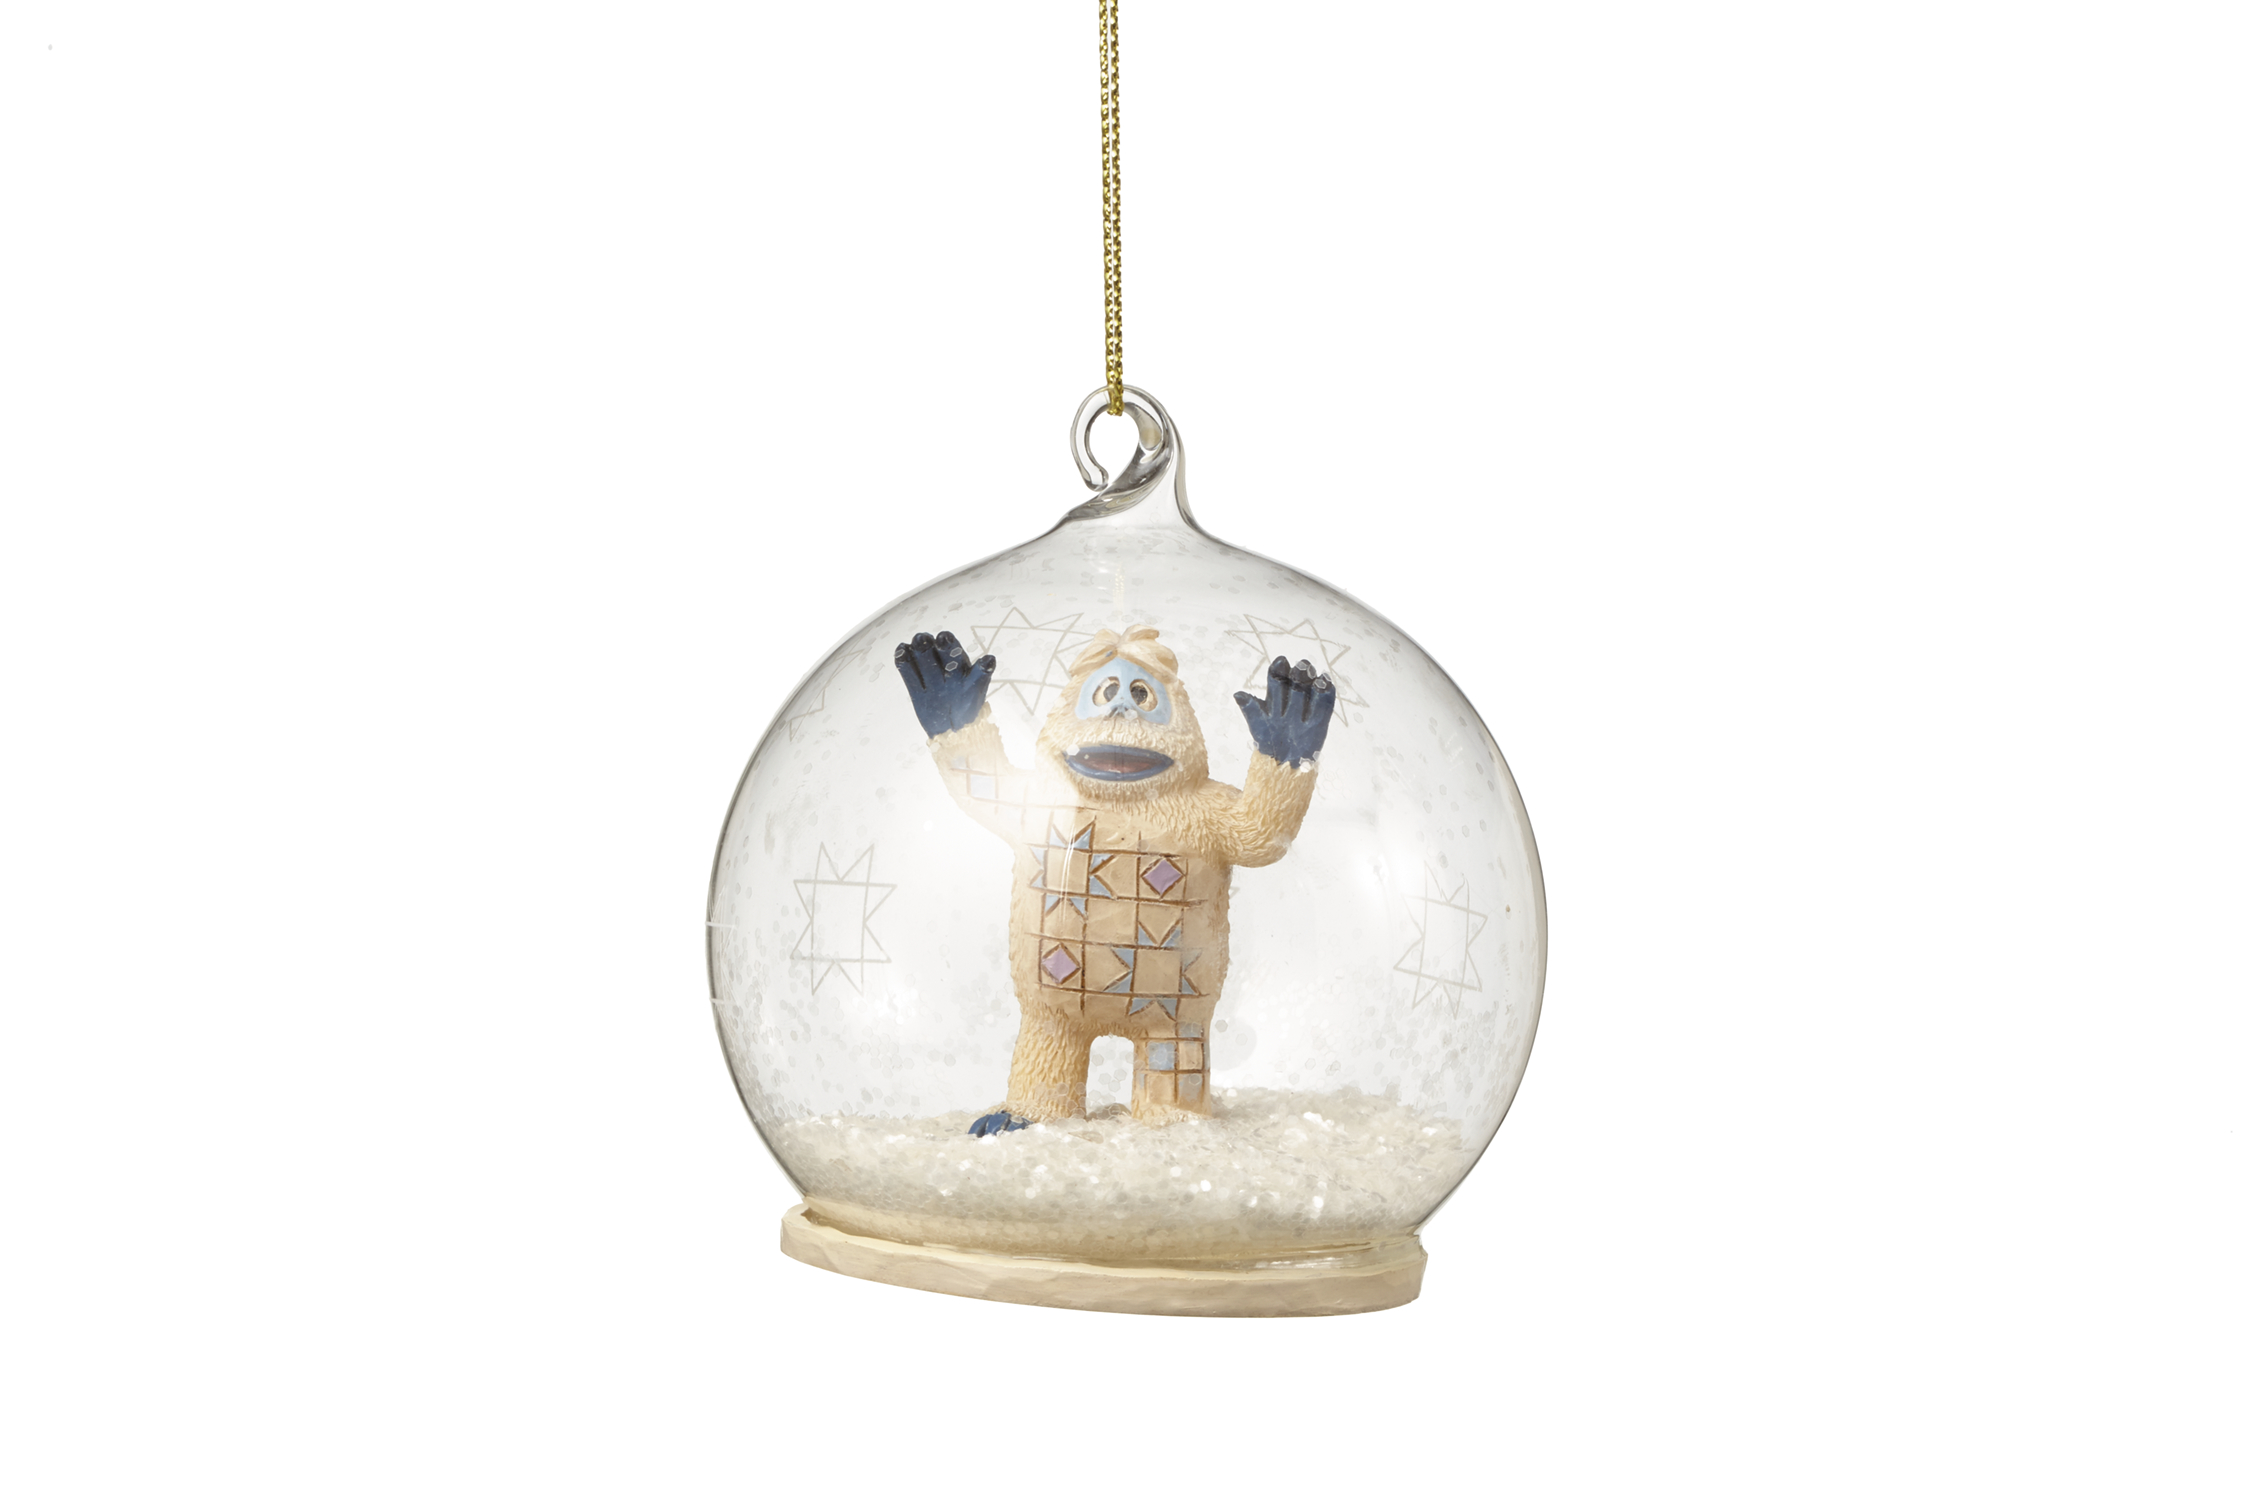 APR168504 - RUDOLPH TRADITIONS BUMBLE DOME ORNAMENT ... | 2250 x 1500 jpeg 562kB